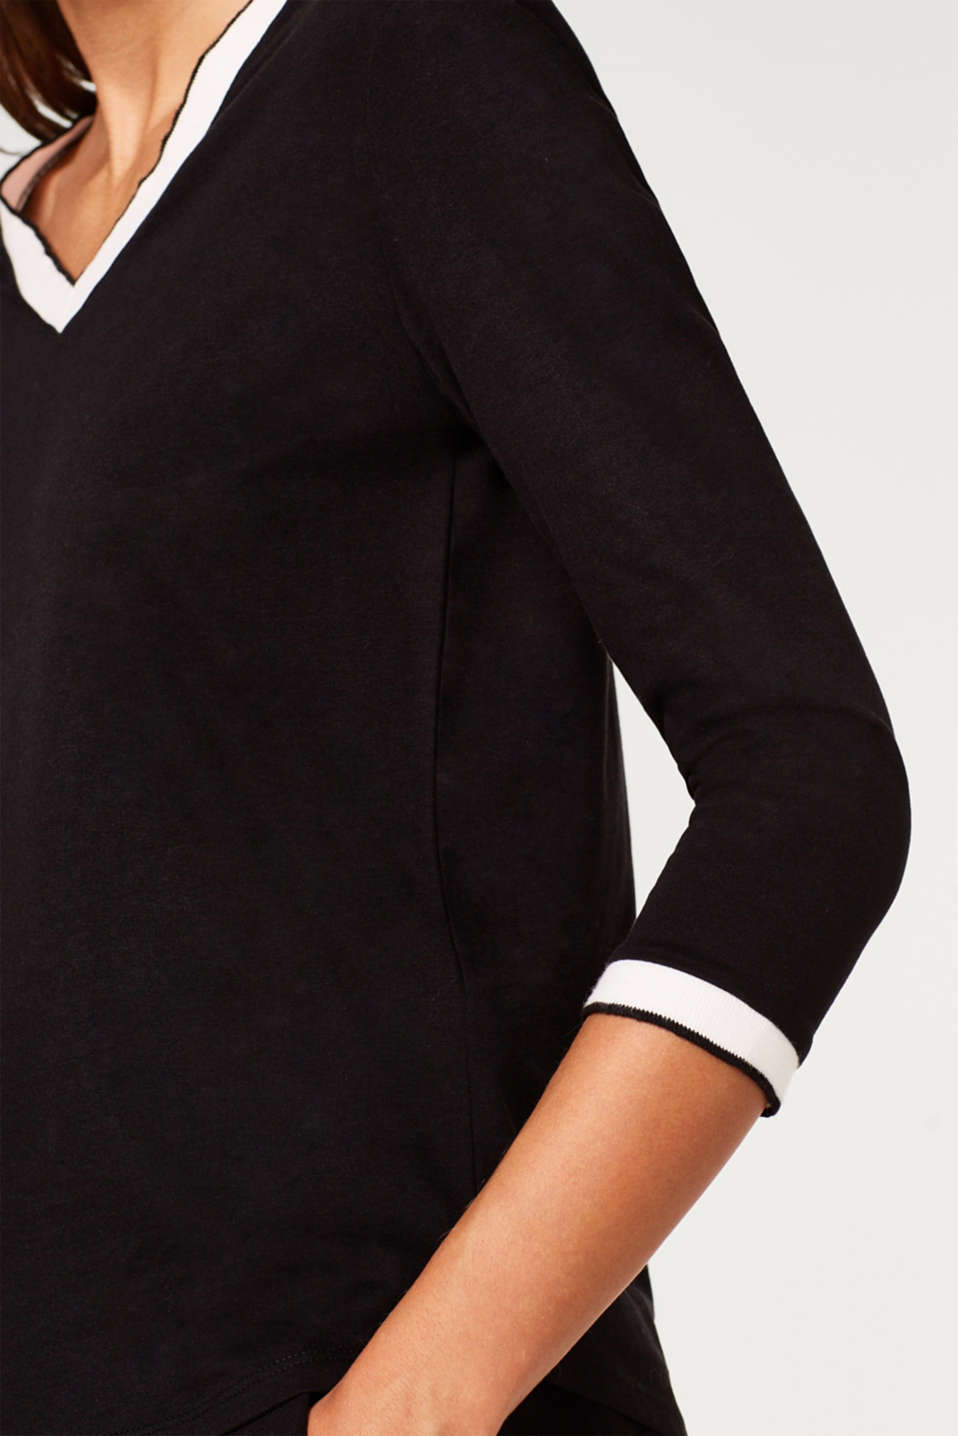 Top with 3/4-length sleeves and contrasting borders